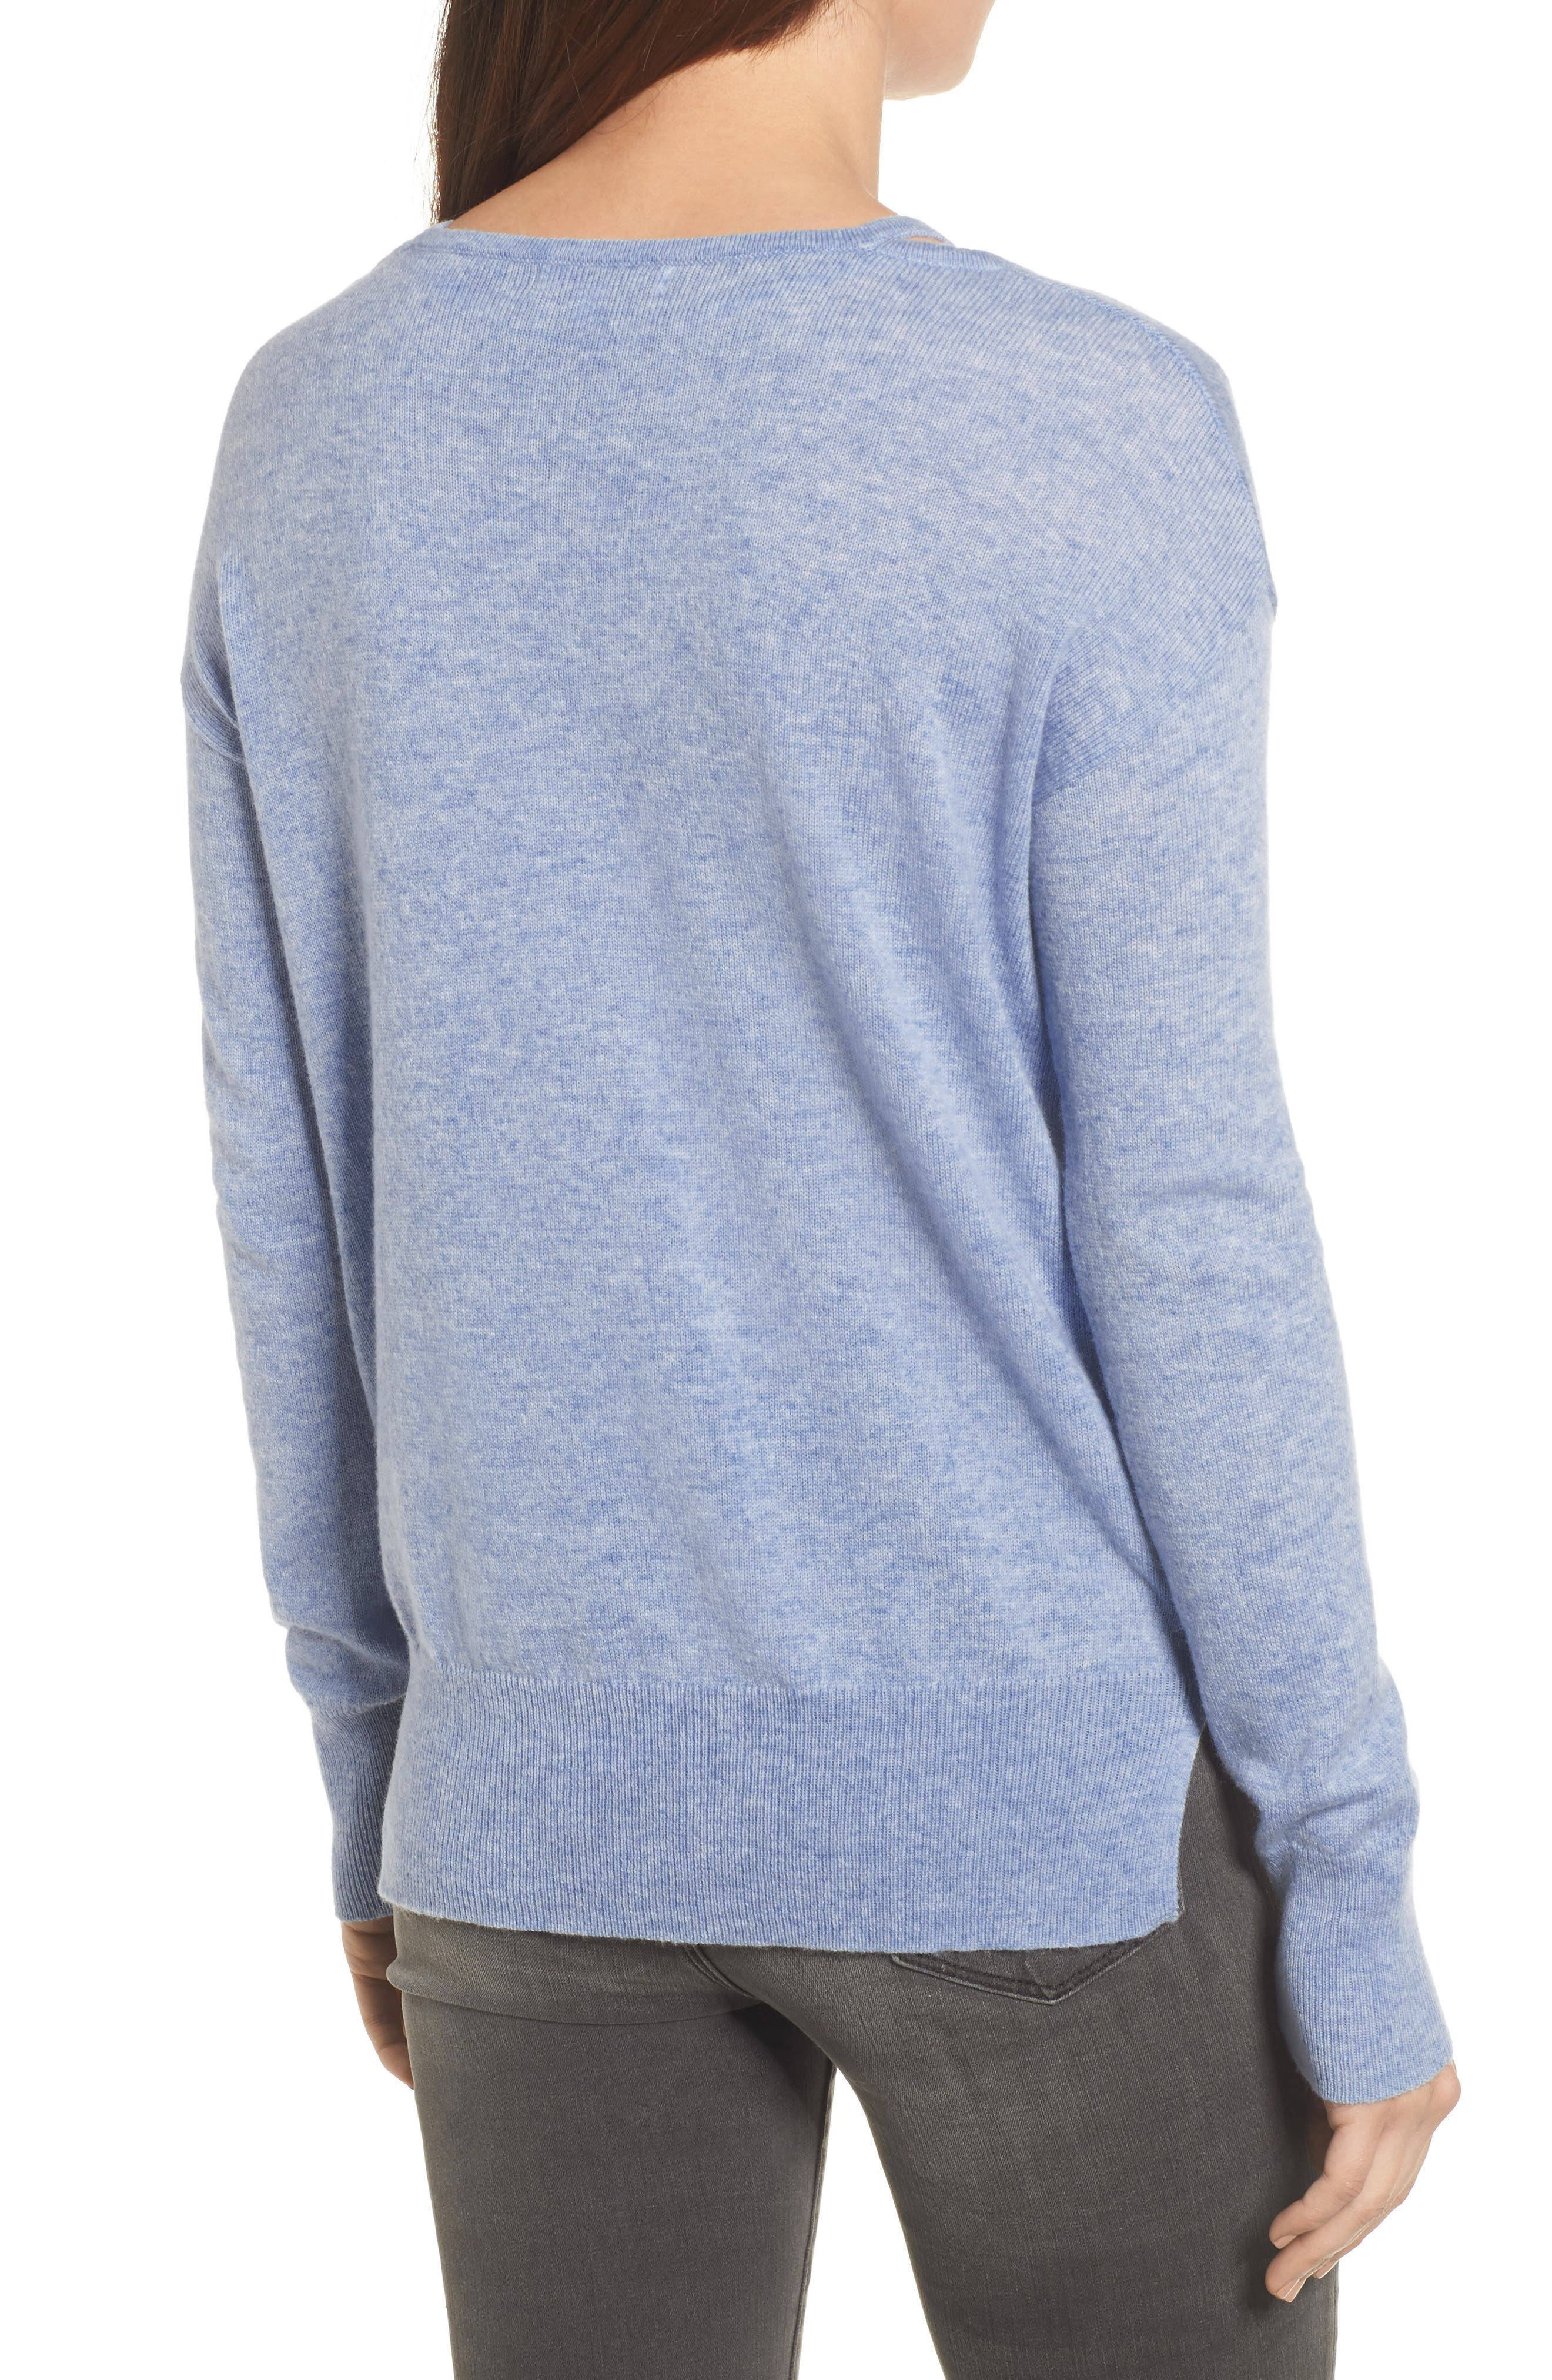 Kenley Wool & Cashmere Sweater,                             Alternate thumbnail 2, color,                             400